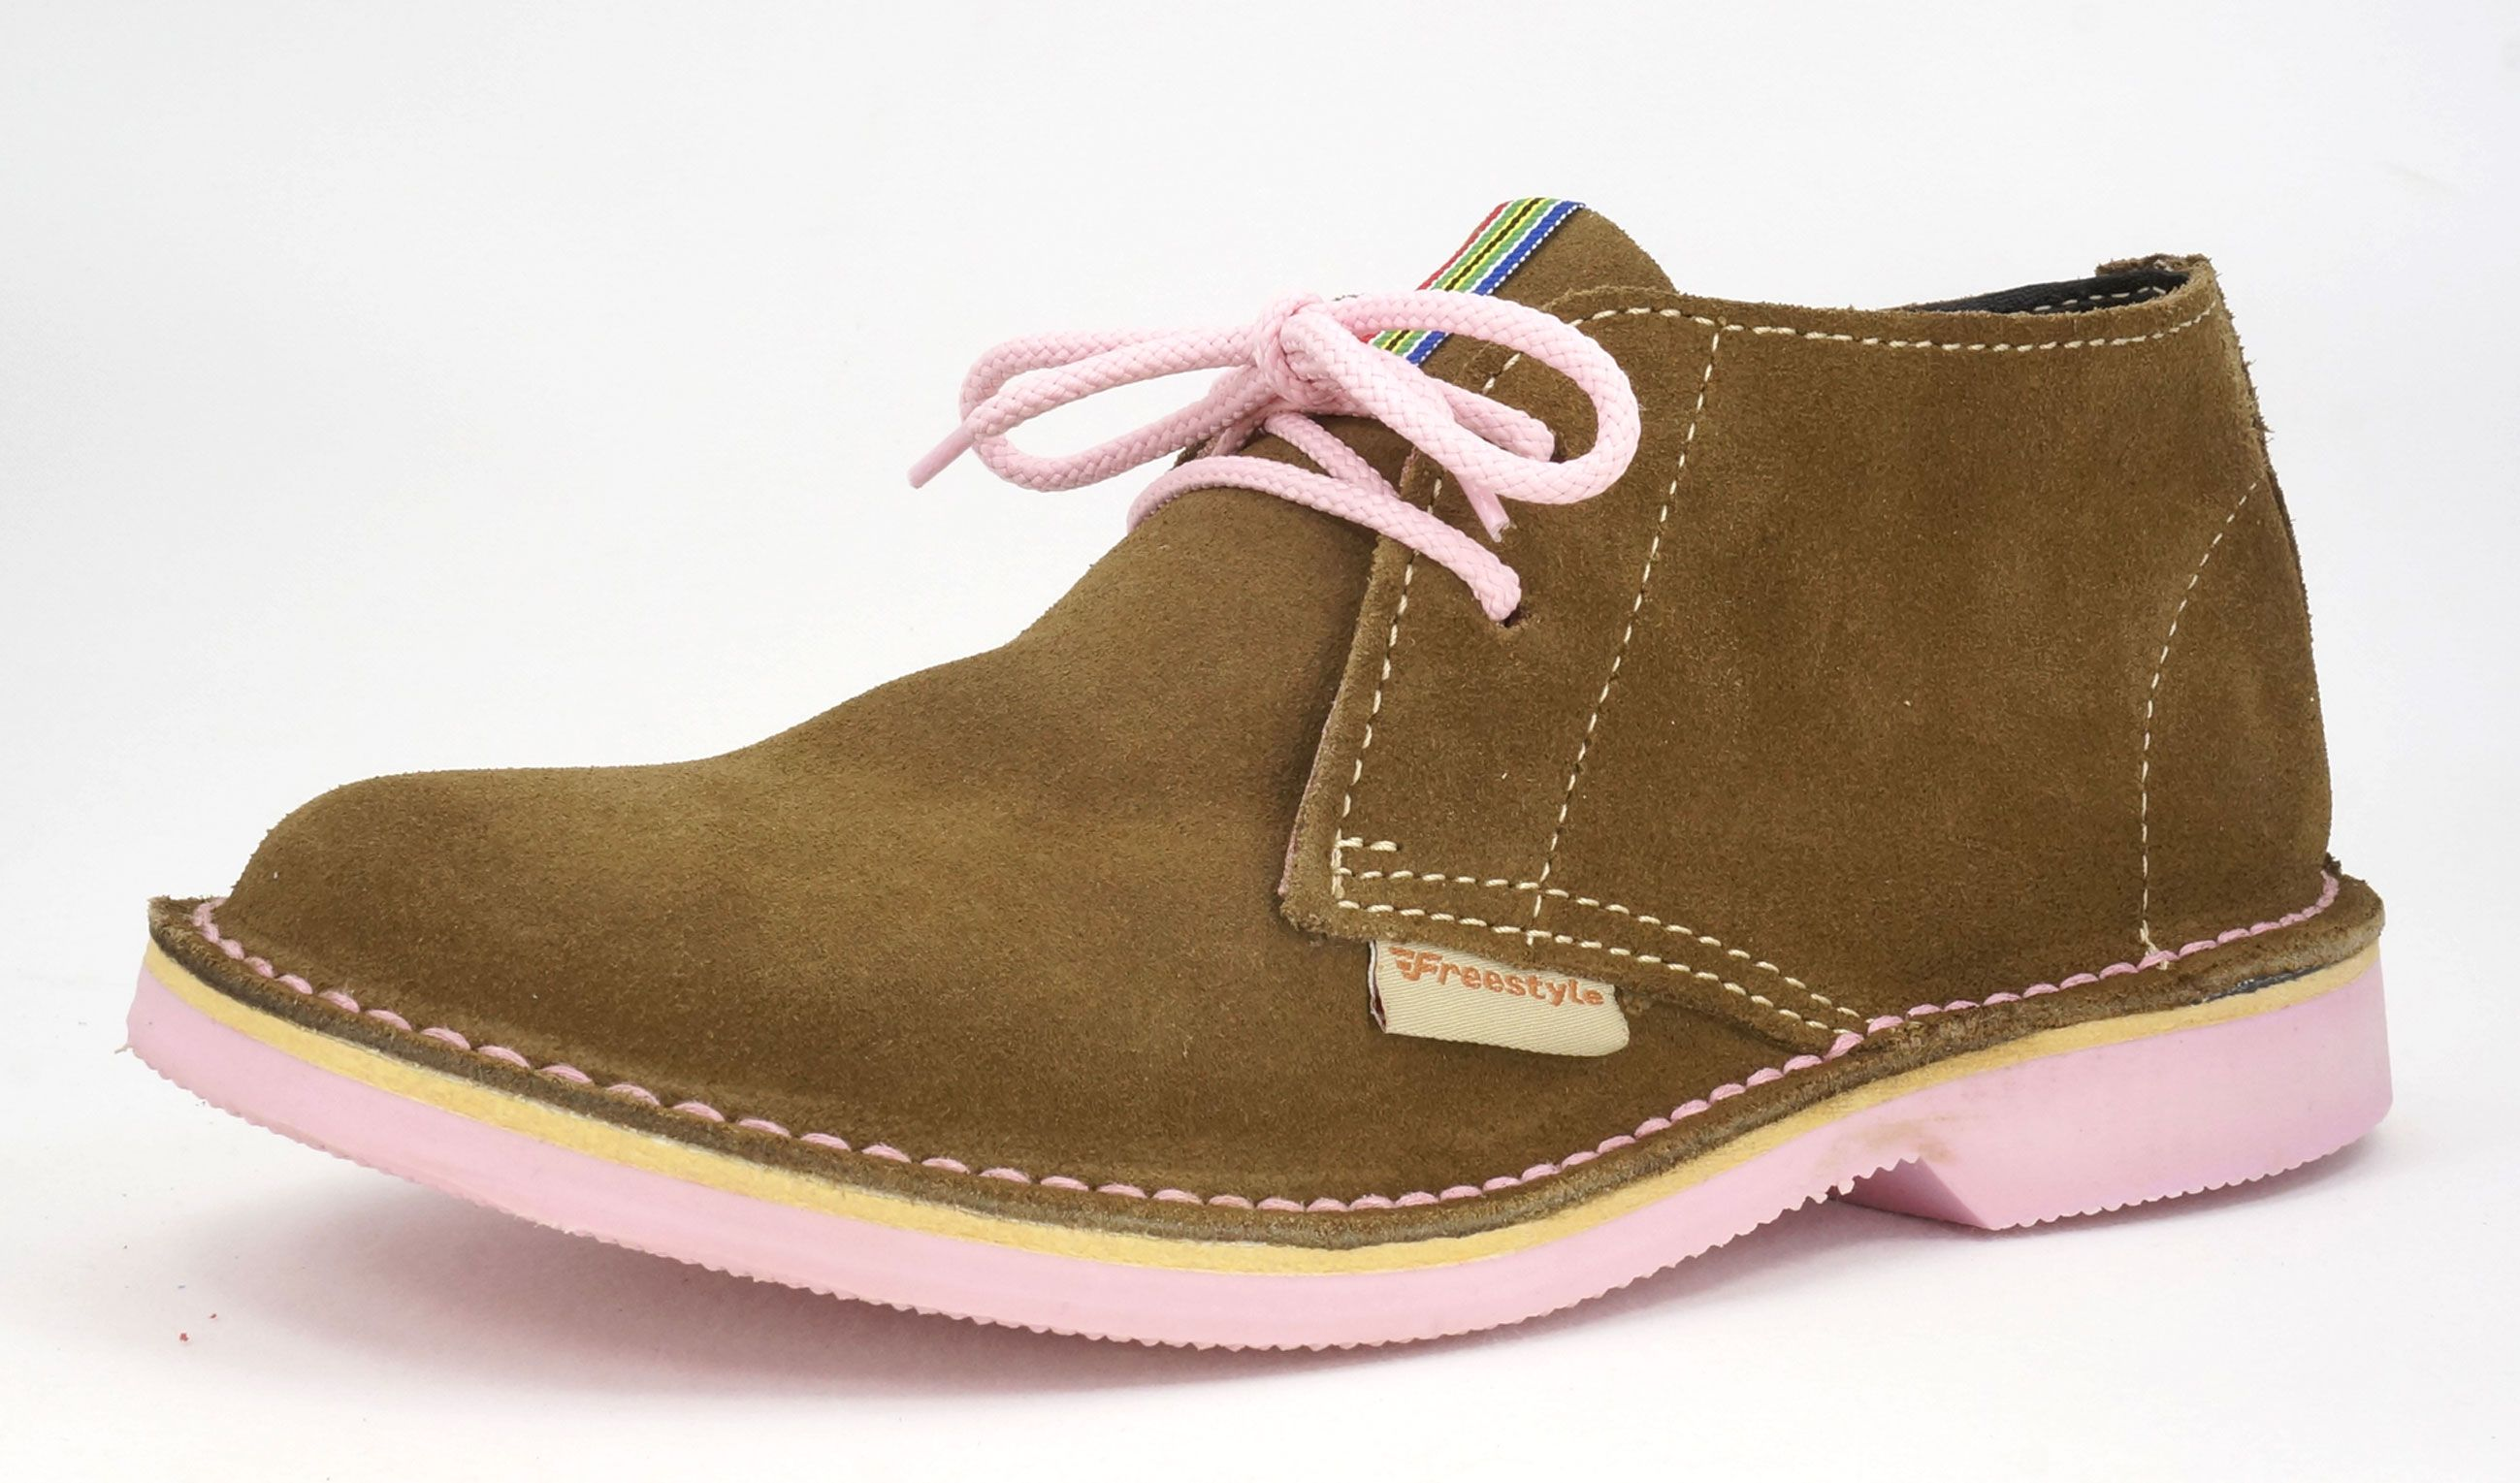 Freestyle Suede Khaki Pink Handcrafted Vellie Hunter Leather Shoes Woman Genuine Leather Boots Shoe Inspiration